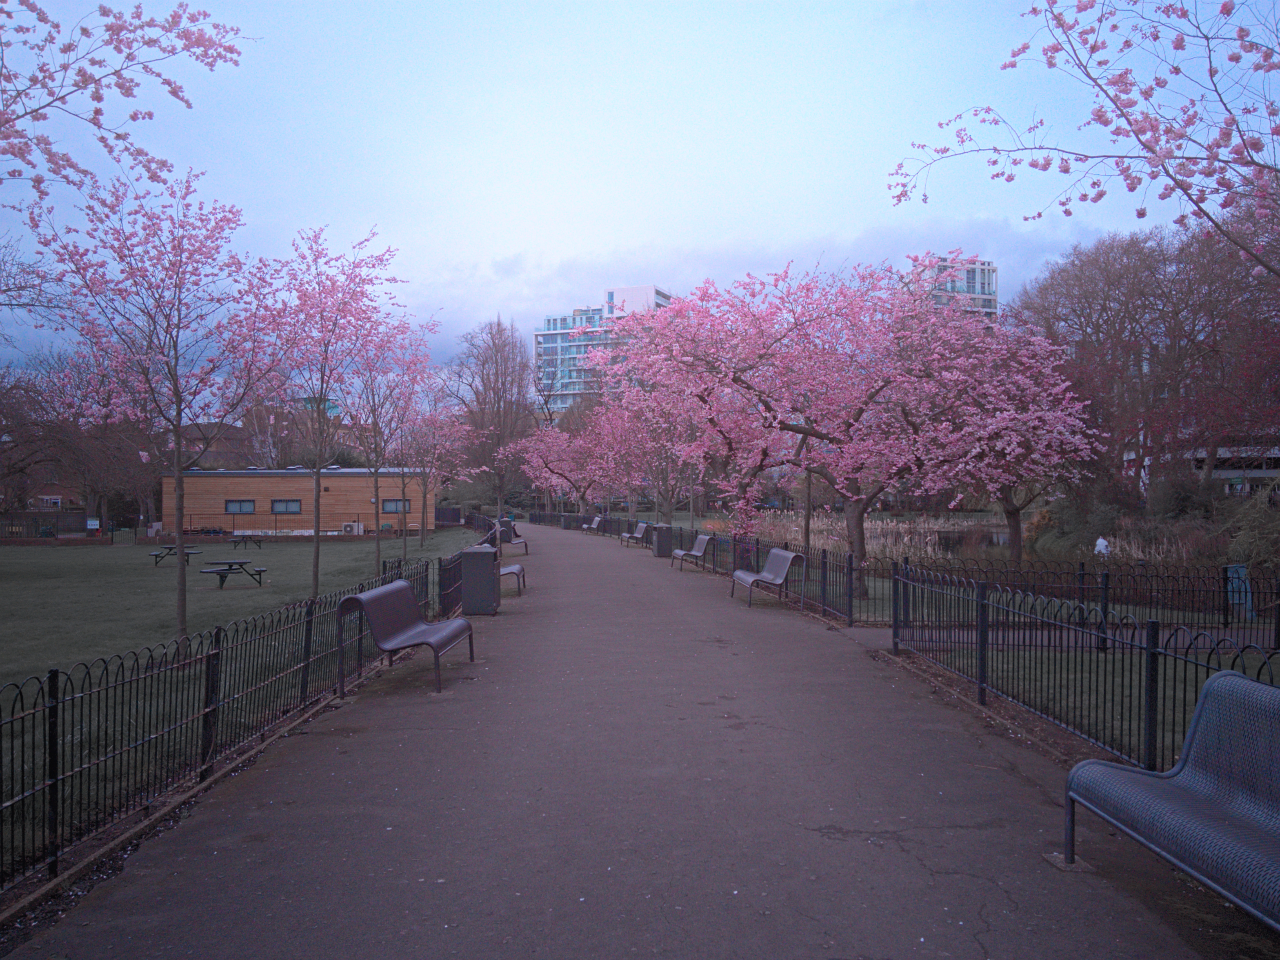 King George's Park, Wandsworth, London, photographed on 9 April 2016